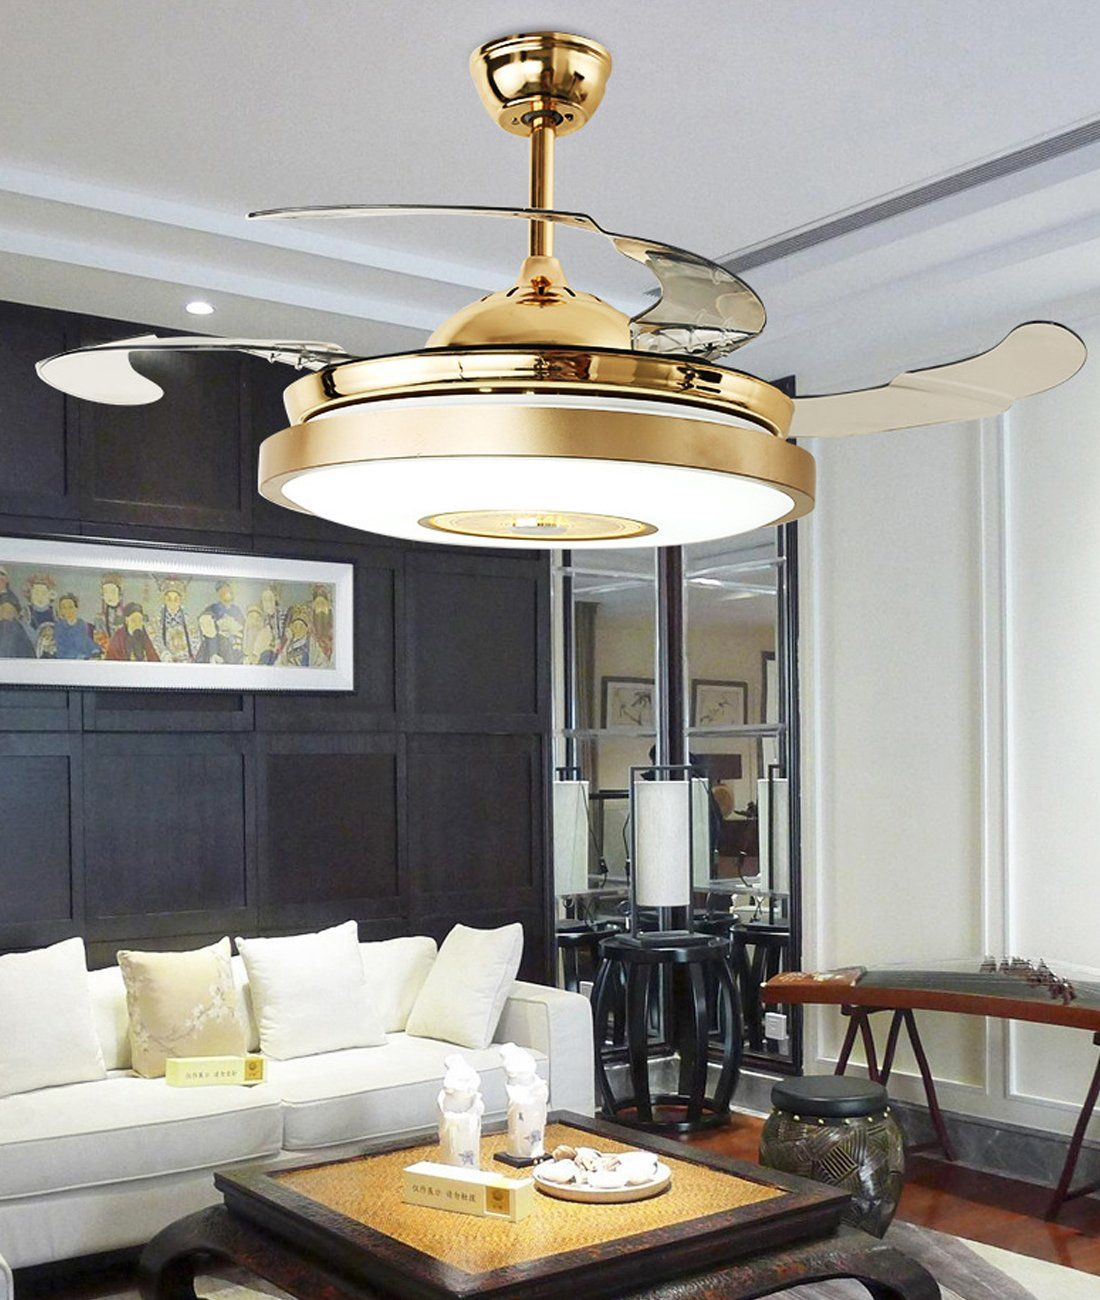 42 Mute Ceiling Fan Light With Bluetooth Speaker And Remote Control Stepless Dimming Chandelier Penda Ceiling Fan In Kitchen Ceiling Fan With Light Ceiling Fan